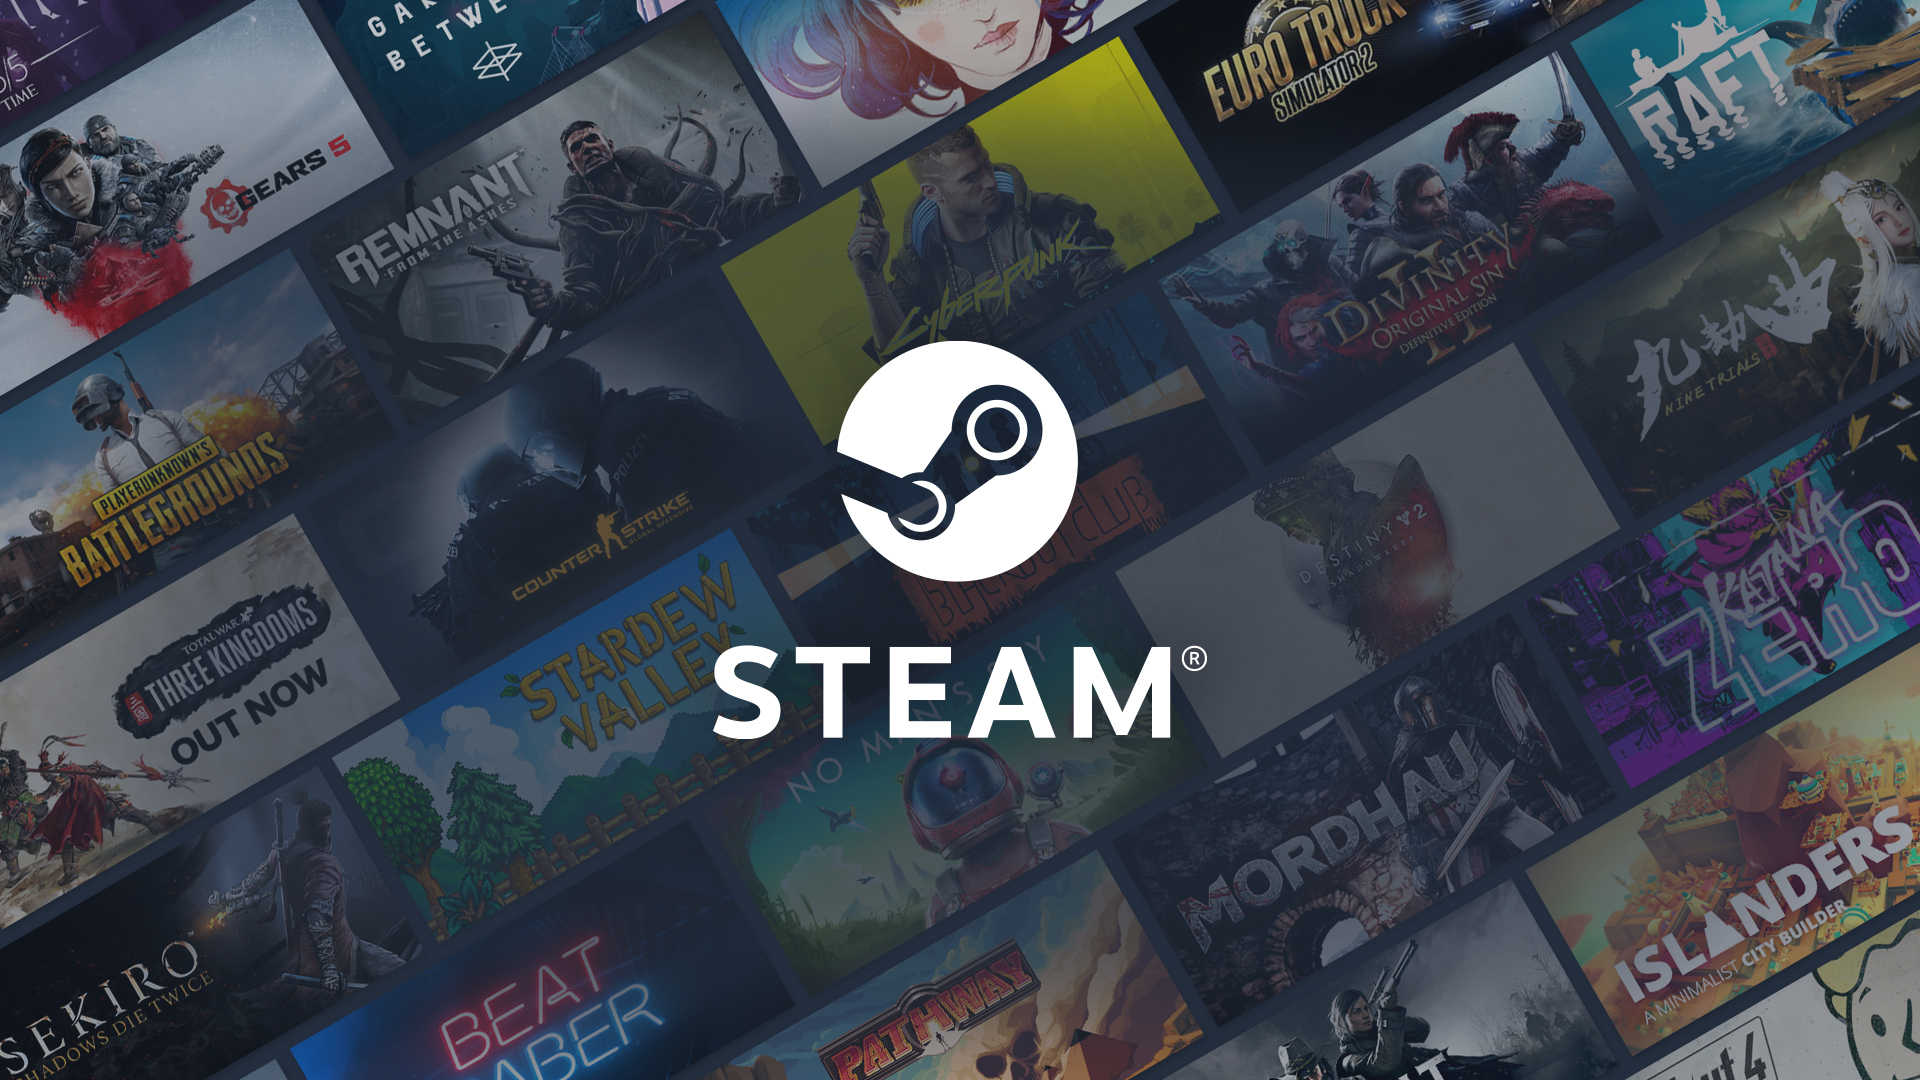 Steam Developer Banned After Trying to Trick Users About Positive Reviews